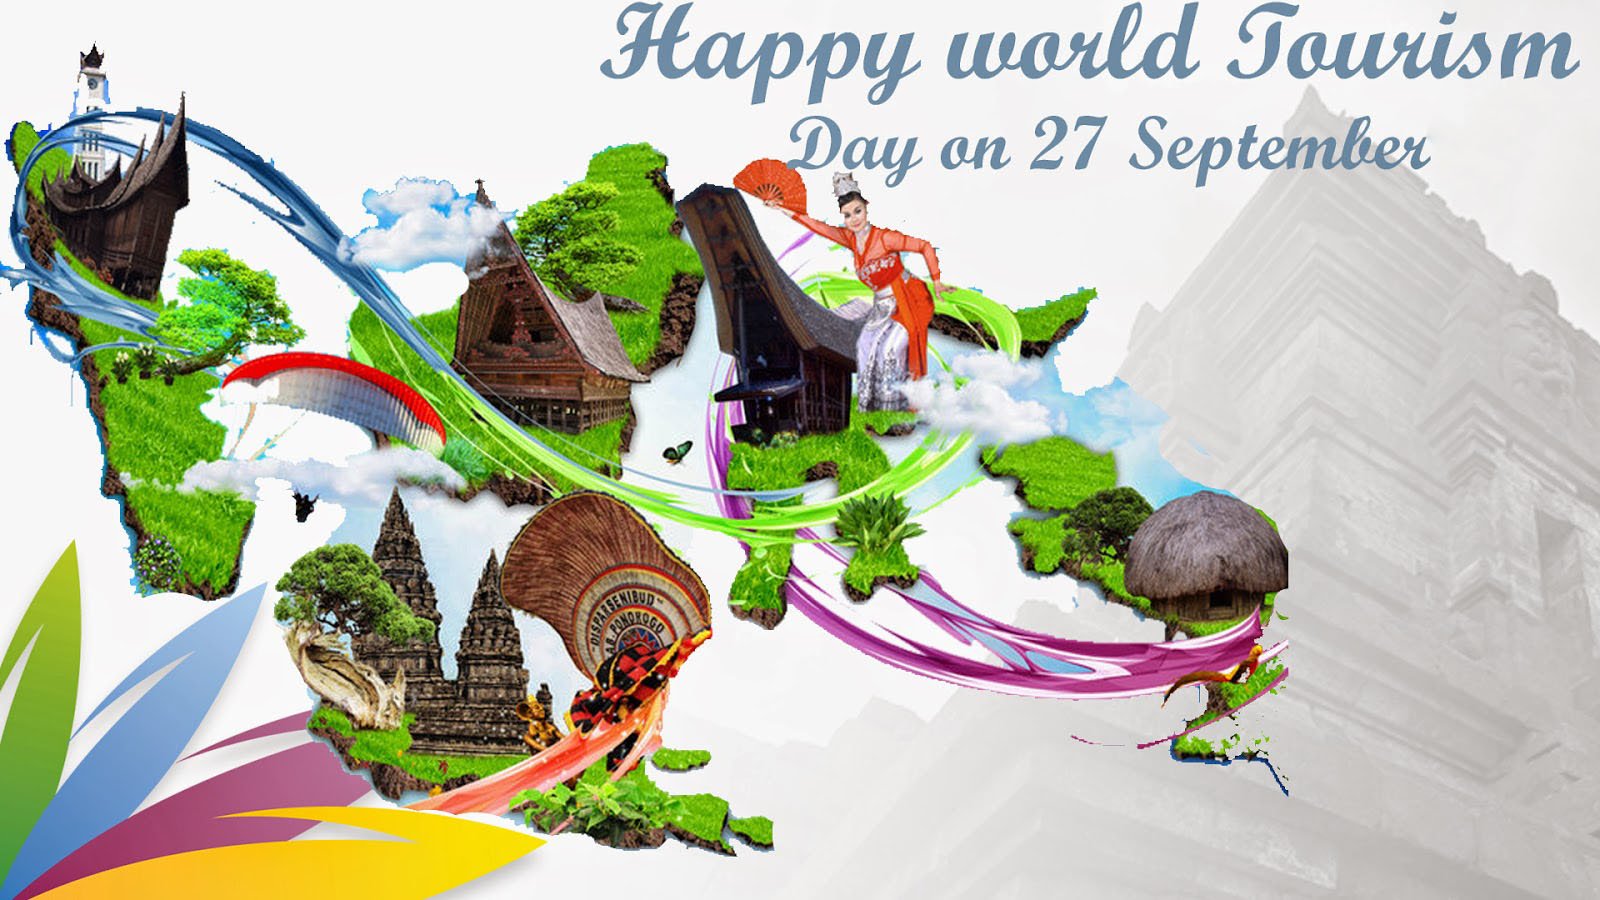 world tourism day september 27 hd latest wallpaper